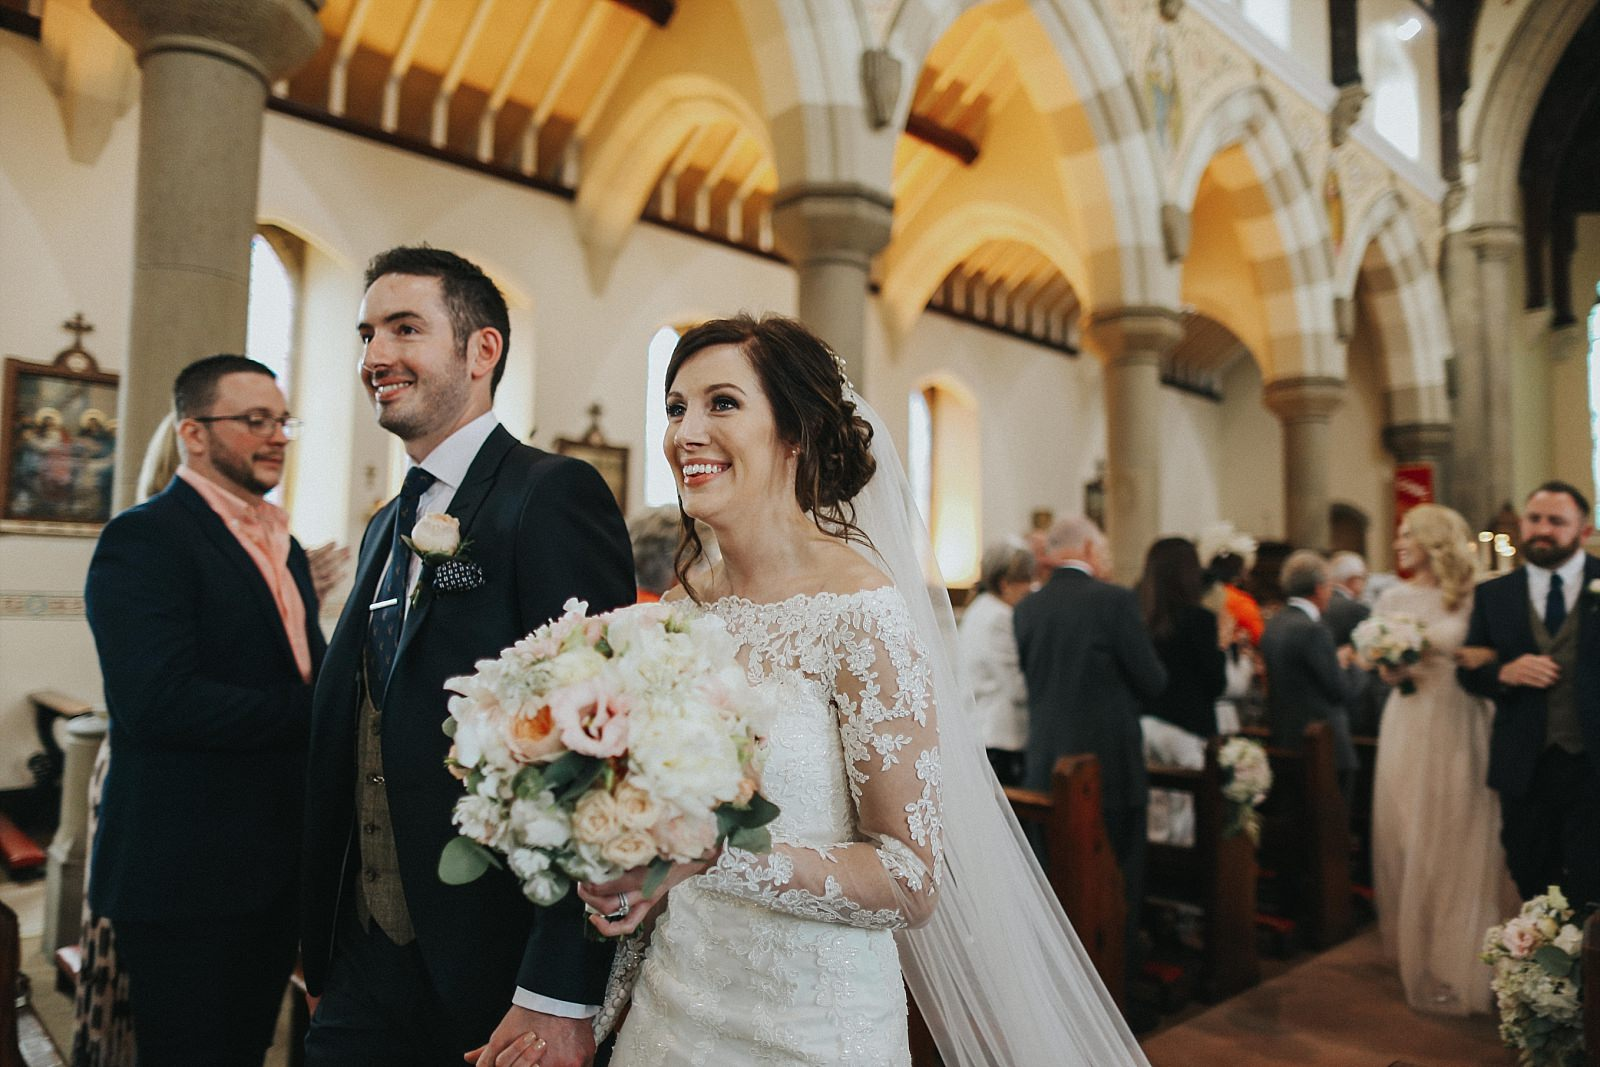 getting married at st wilfrid's church